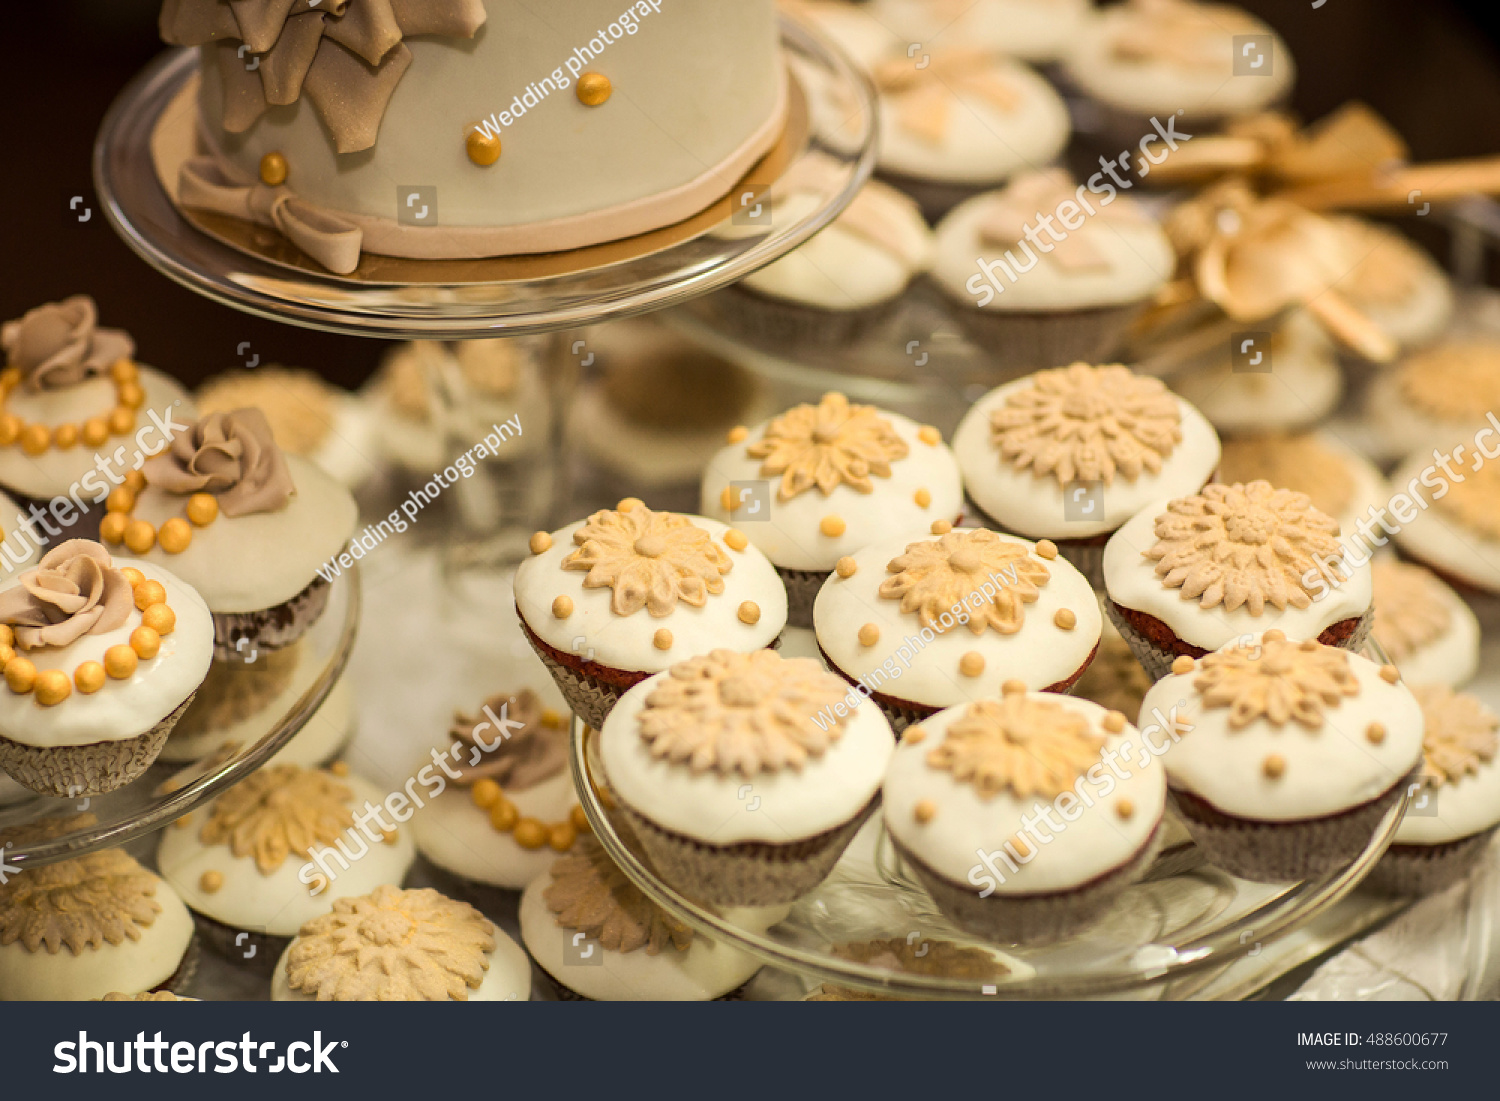 Candy Bar Cakes Delicious Wedding Candy Stock Photo (Edit Now ...